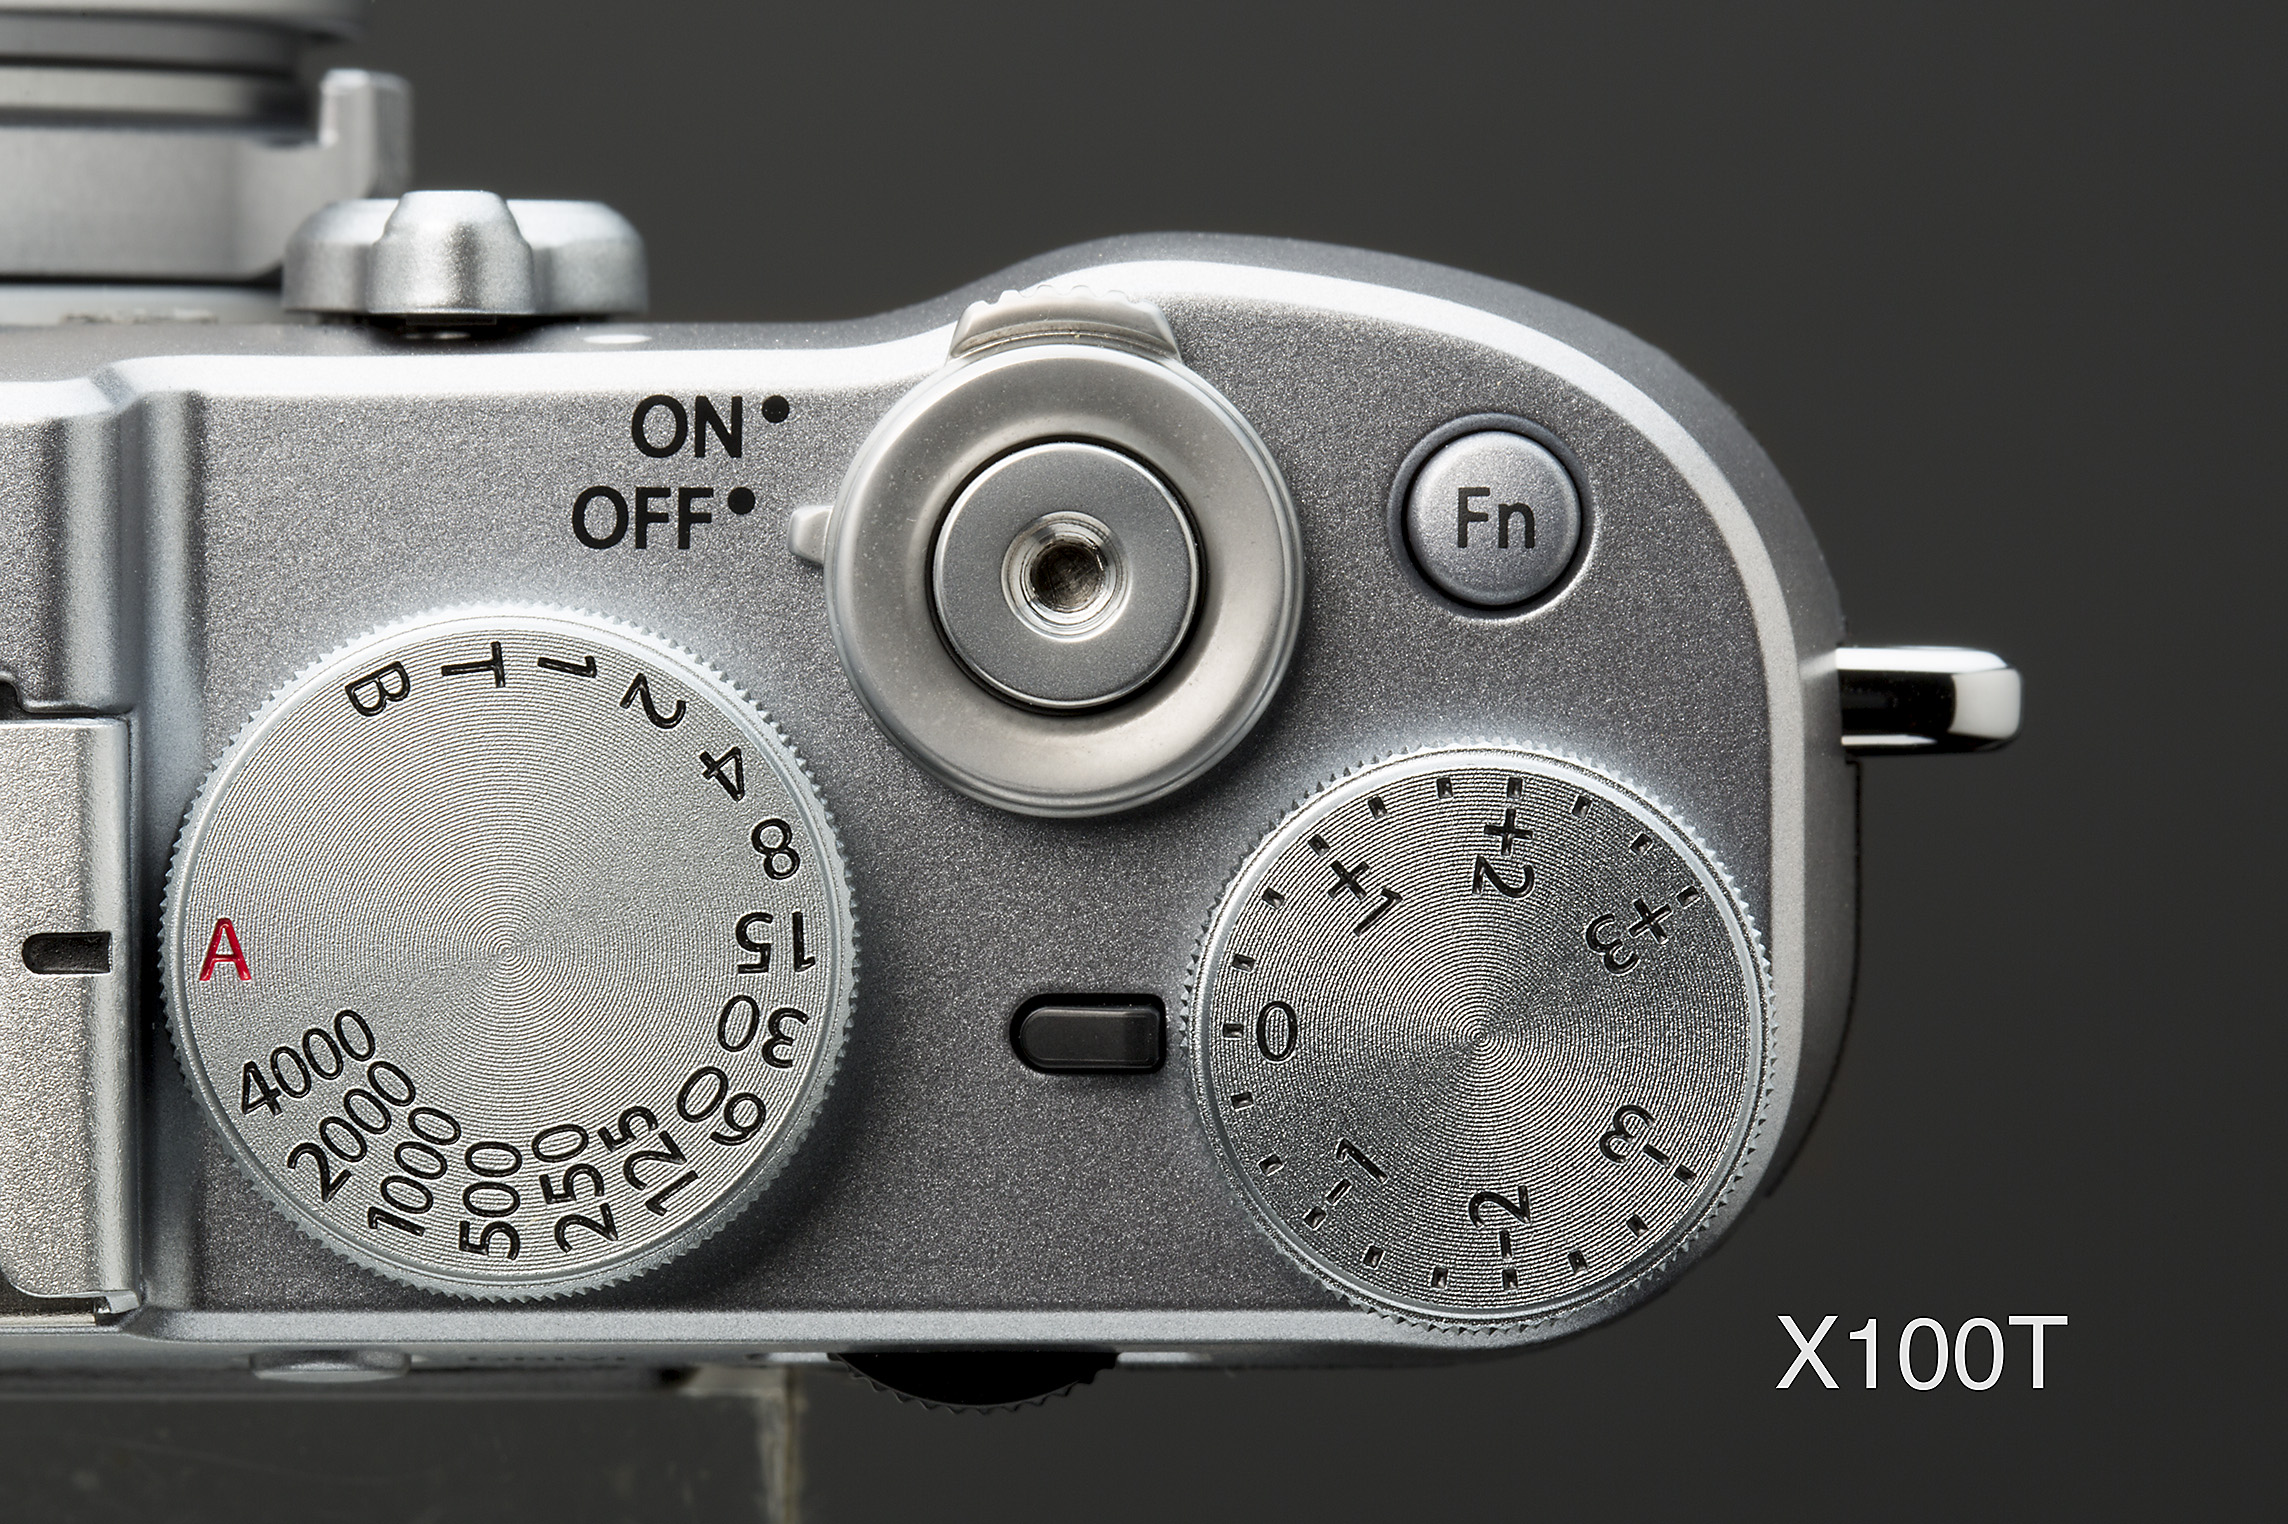 The X-100T's all manual controls. Image © Fujifilm